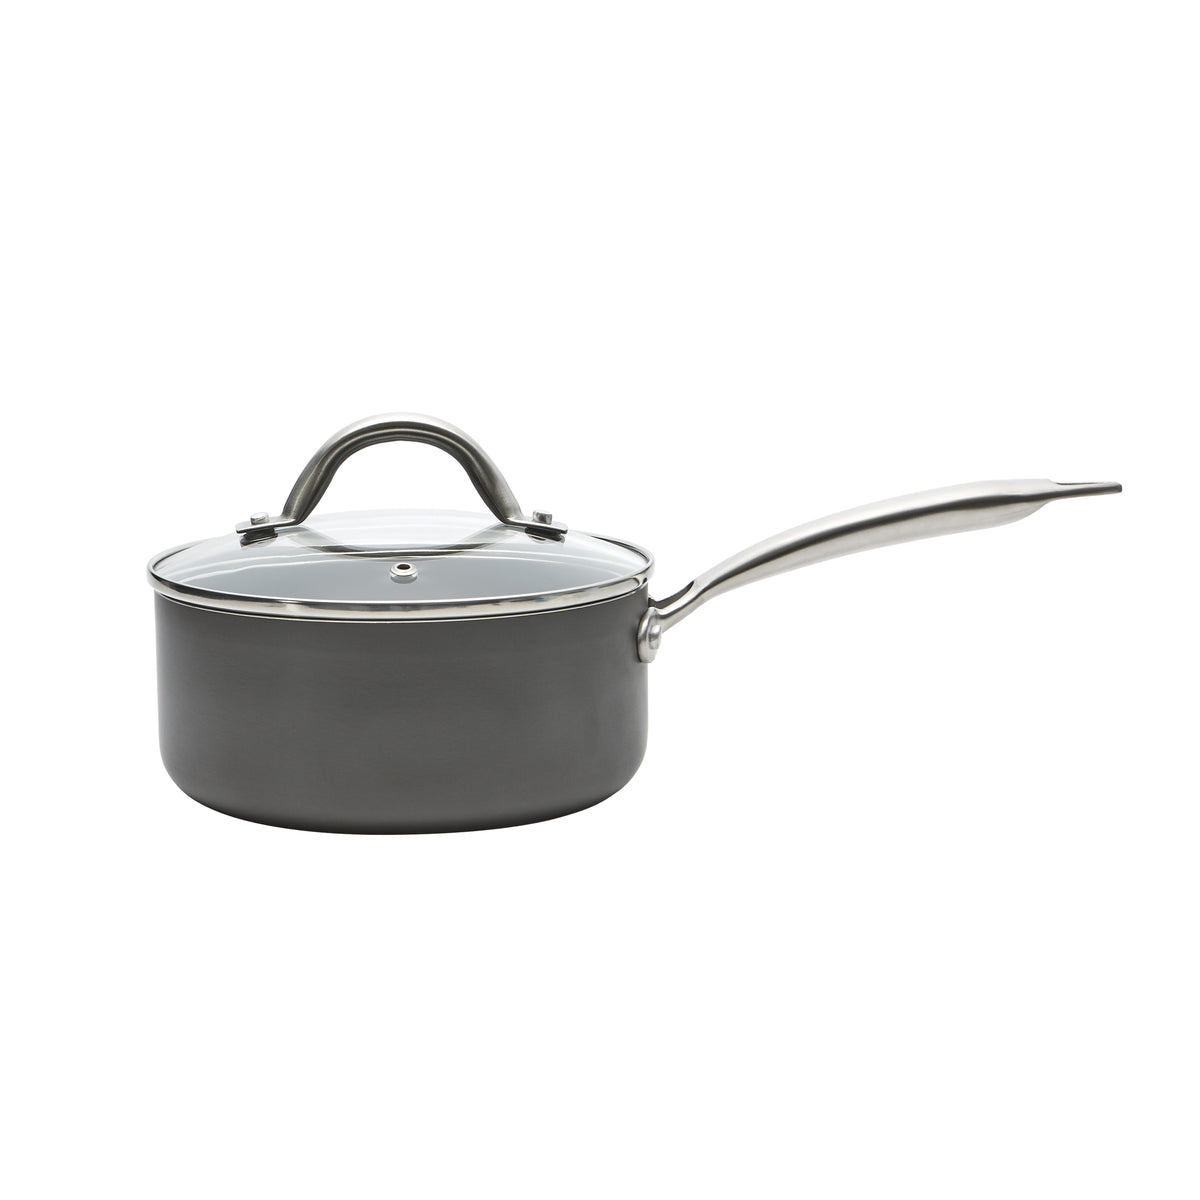 Hard Anodized 1.8 QT Sauce Pan